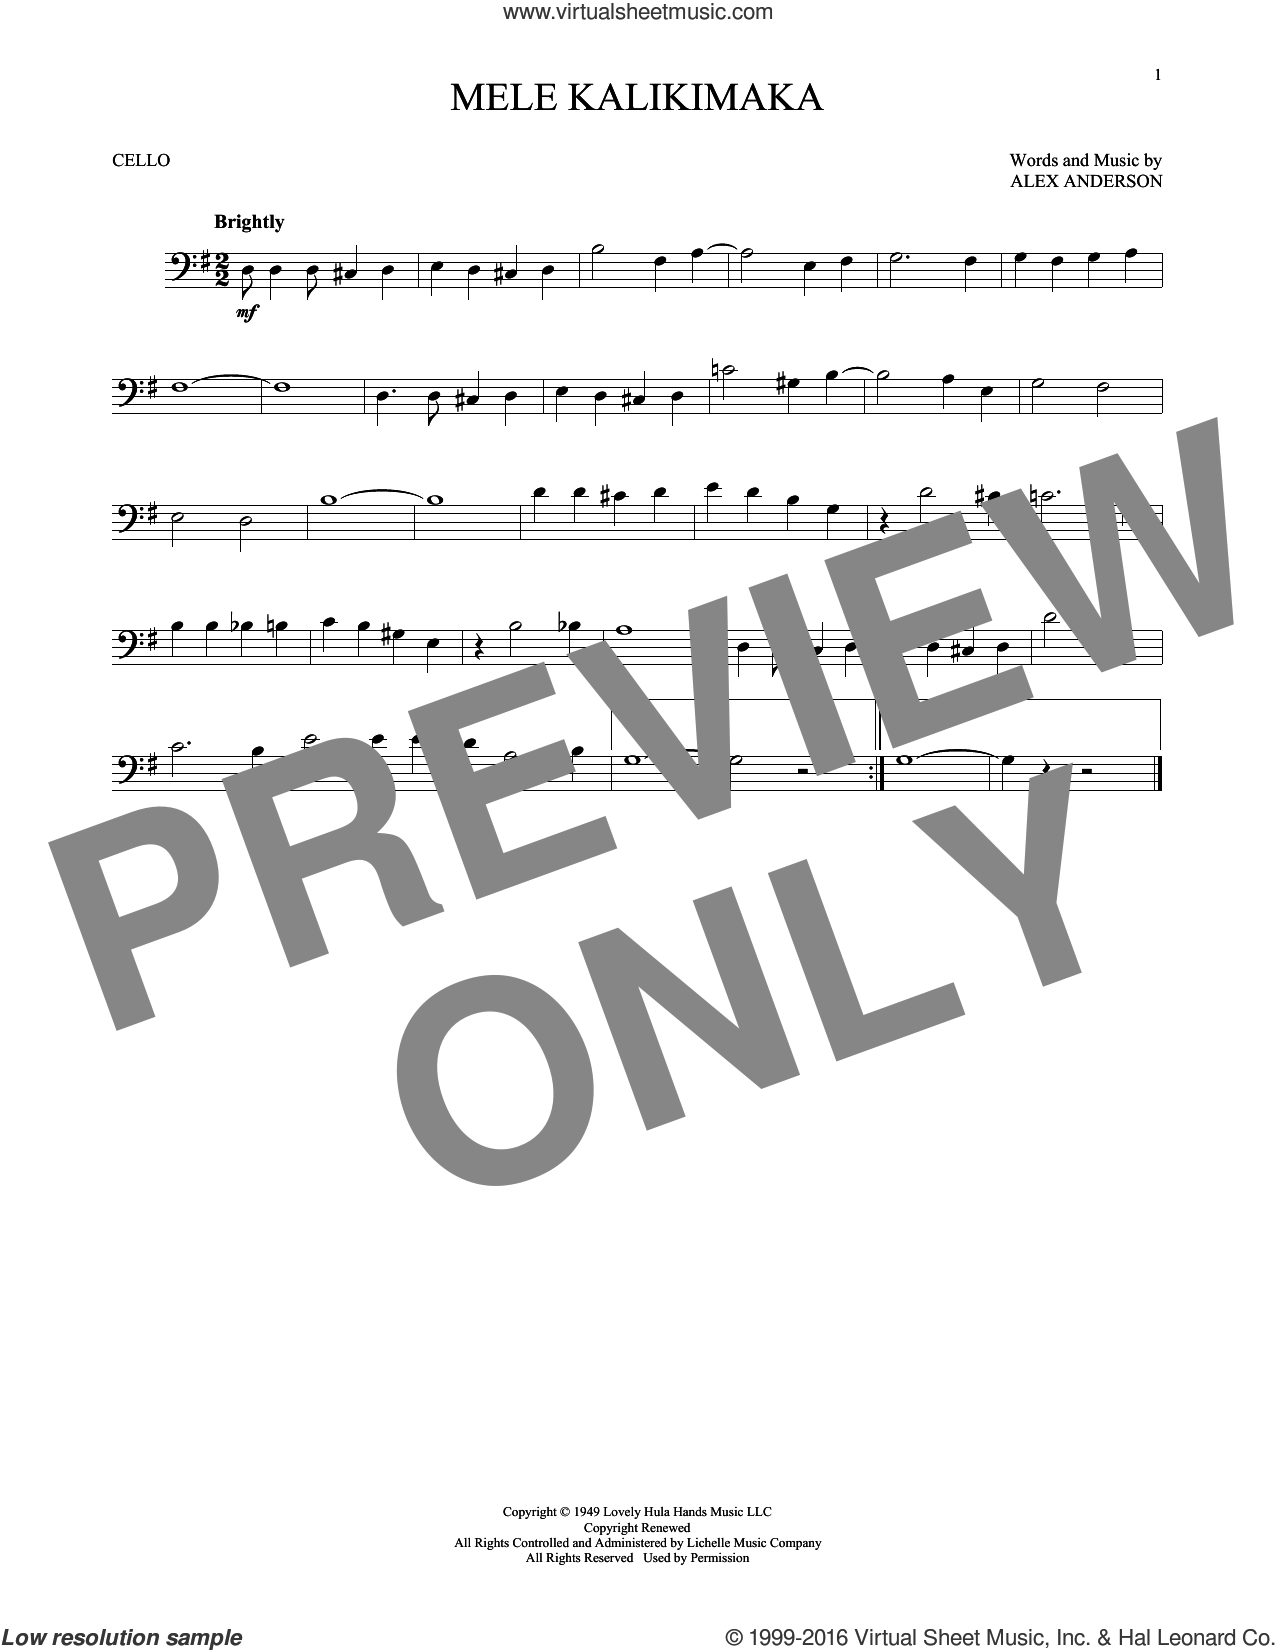 Mele Kalikimaka sheet music for cello solo by Bing Crosby and R. Alex Anderson, intermediate skill level